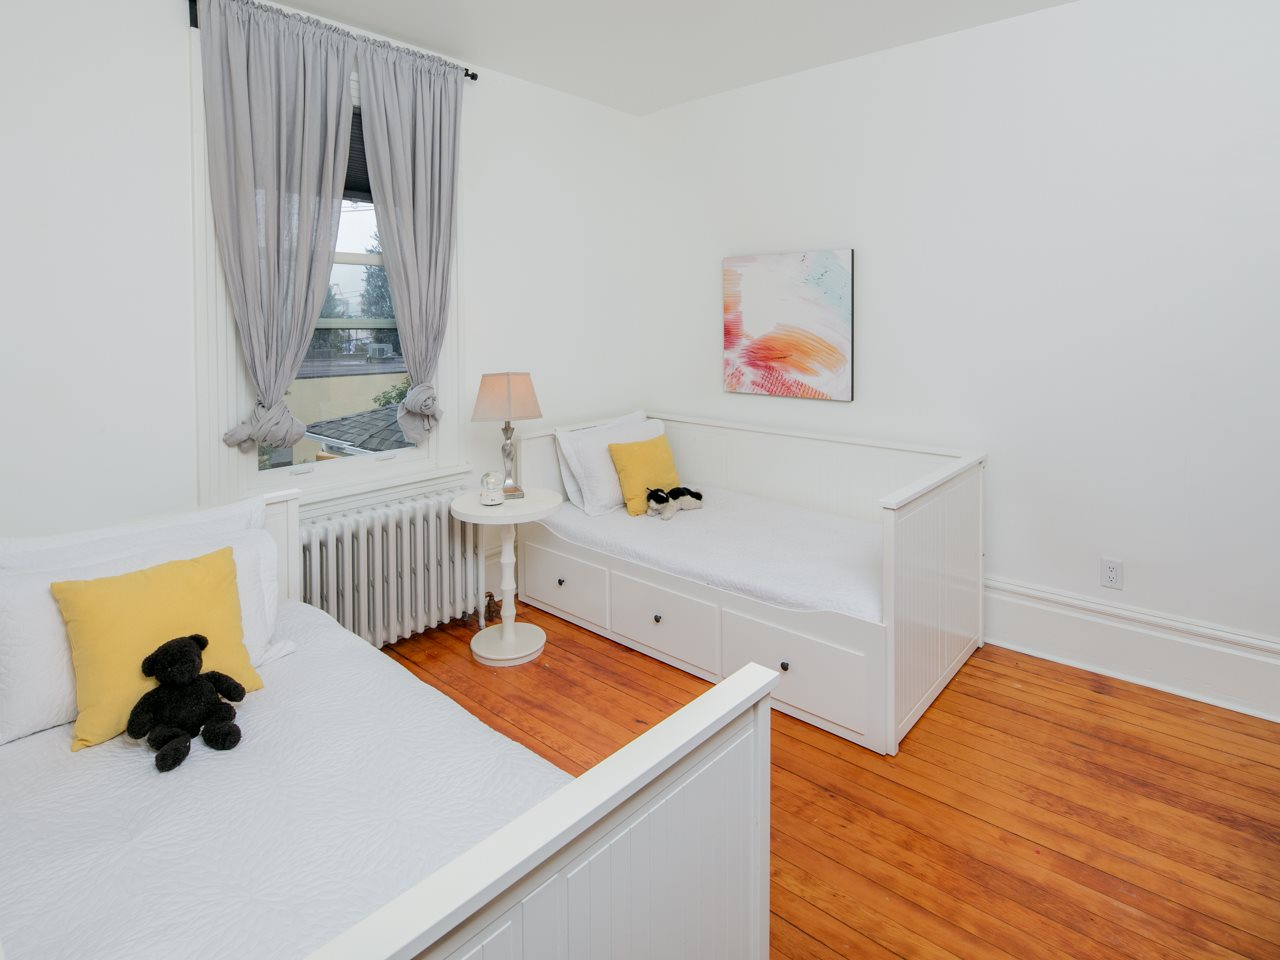 Photo 11: 1137 E PENDER Street in Vancouver: Mount Pleasant VE House for sale (Vancouver East)  : MLS® # R2204220